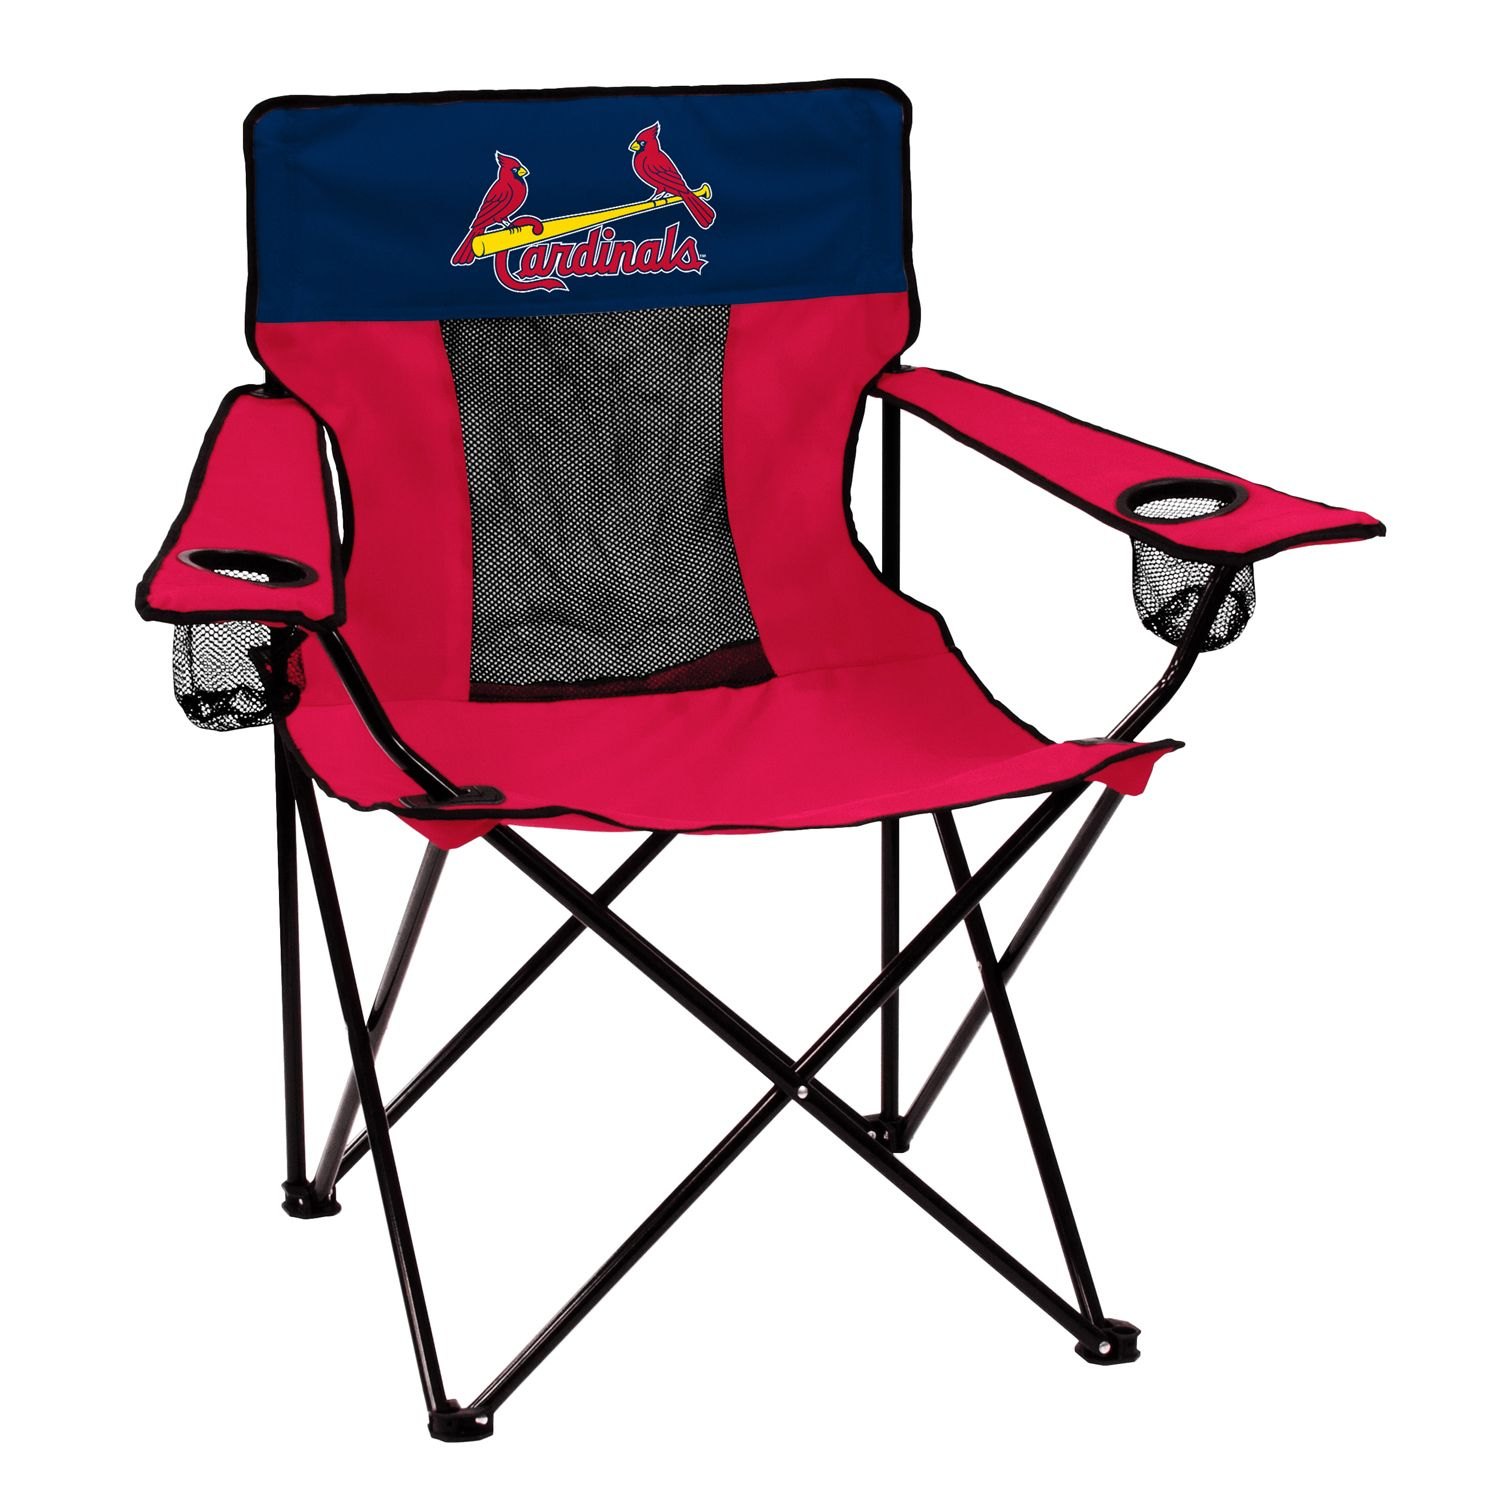 Fold Up Lawn Chairs Latest Fold Up Lawn Chairs With Footrest With